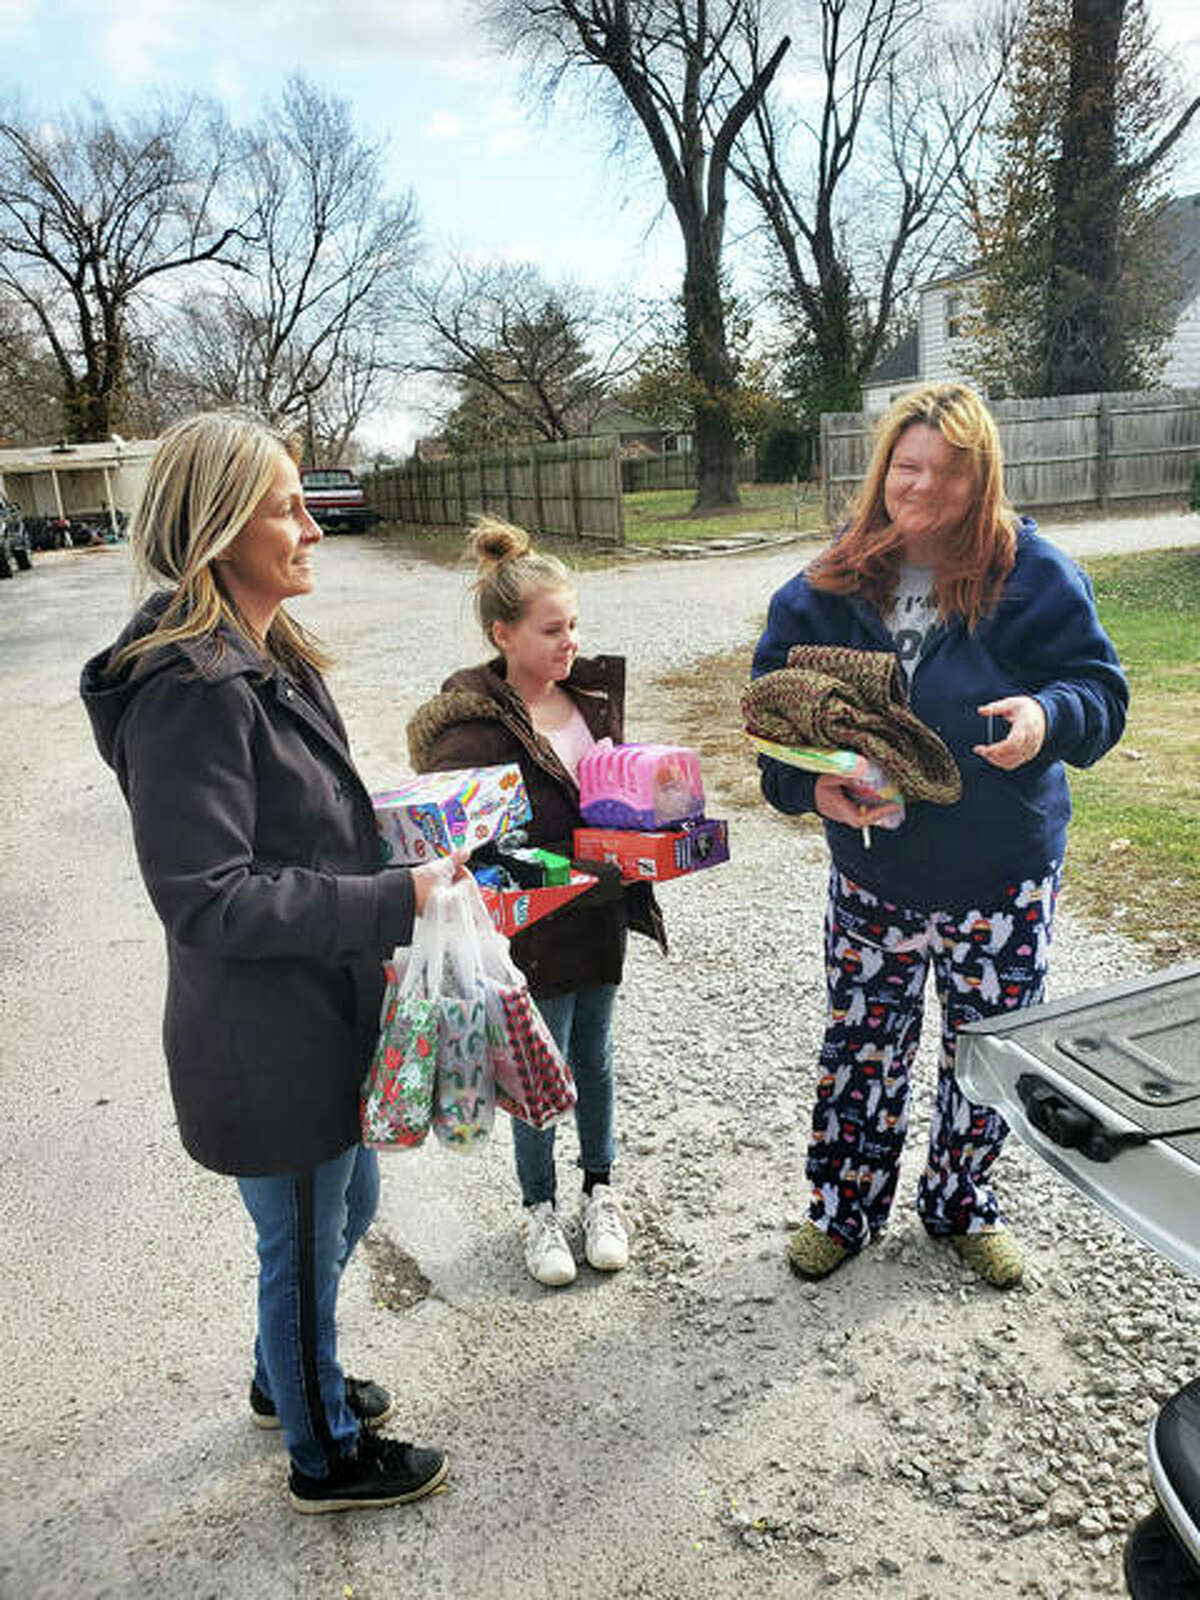 Families receive gifts and personal items from Riverbend Family Ministries volunteers Dave Thomason, owner and founder of River's Edge Entertainment, John Fuller, Paula Rhoades and 8-year-old Jamie during the week of Christmas.